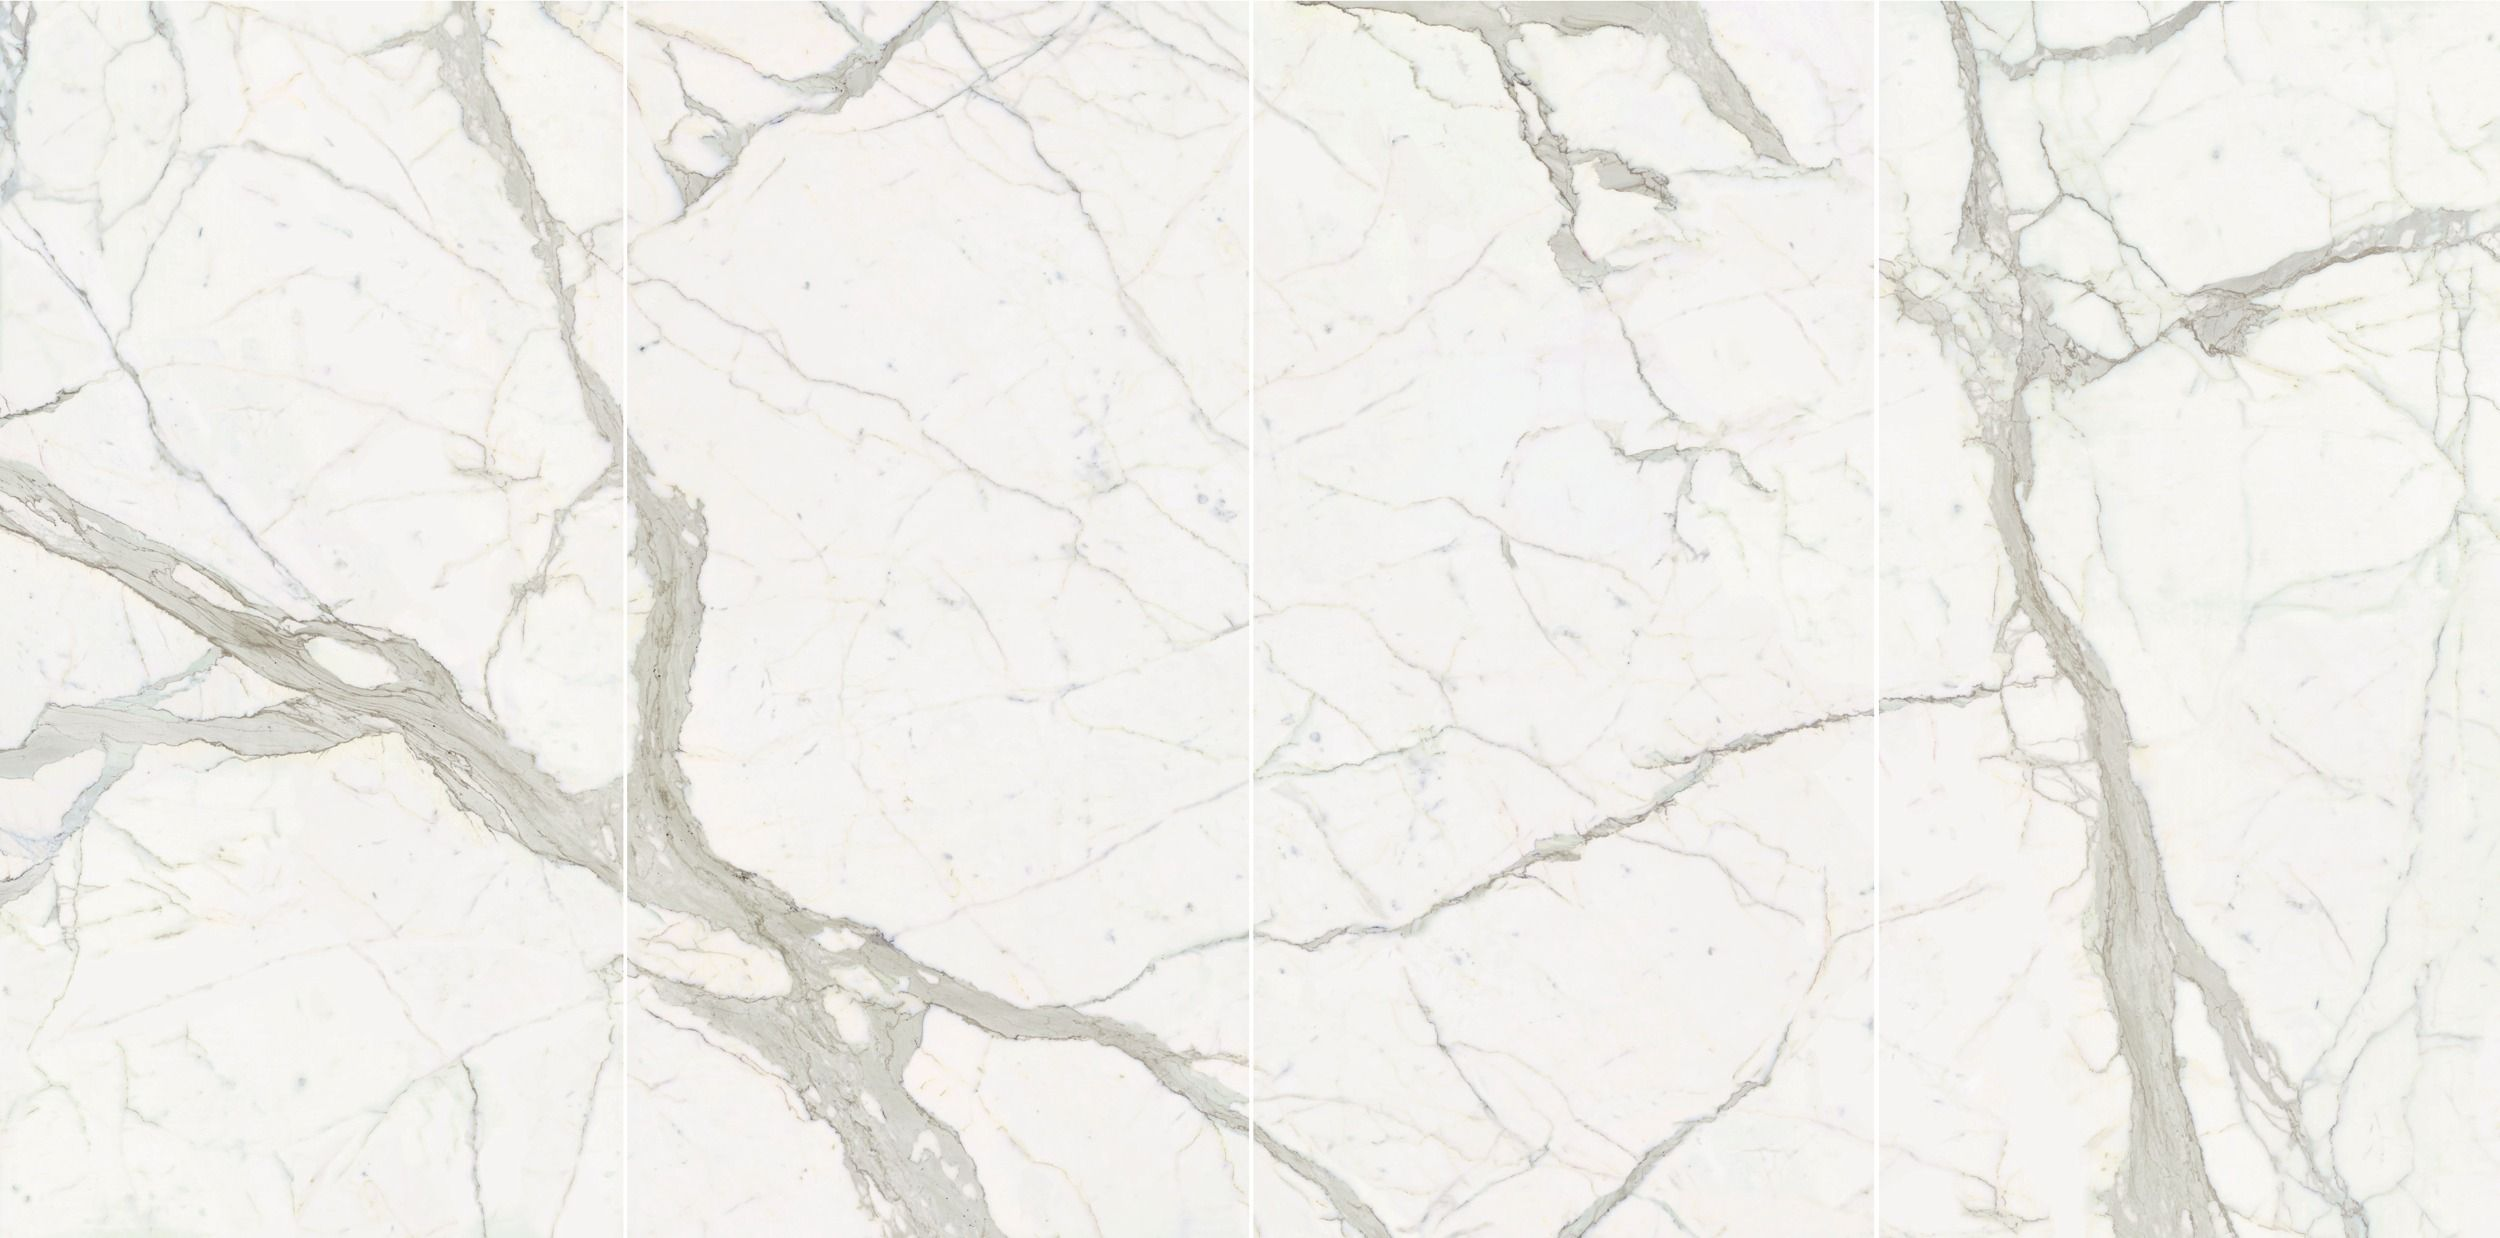 Book match Bookmatch marble tile The MAXIMUM Marmi collection has captured the luxurious look